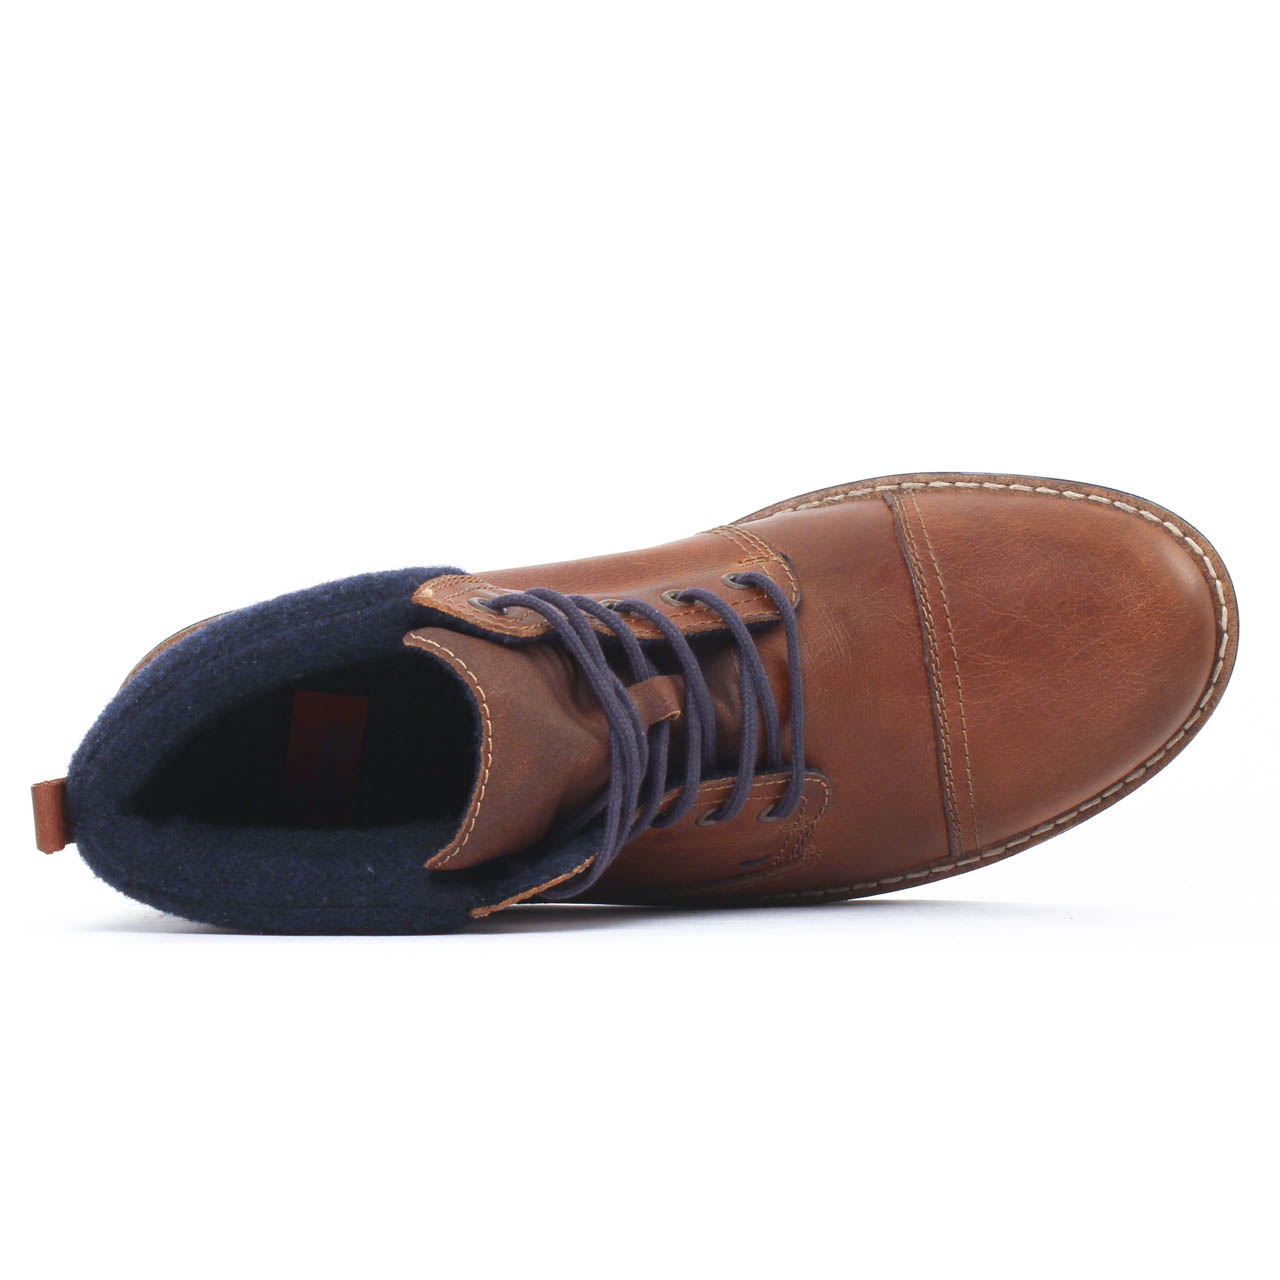 chaussure homme montante marron